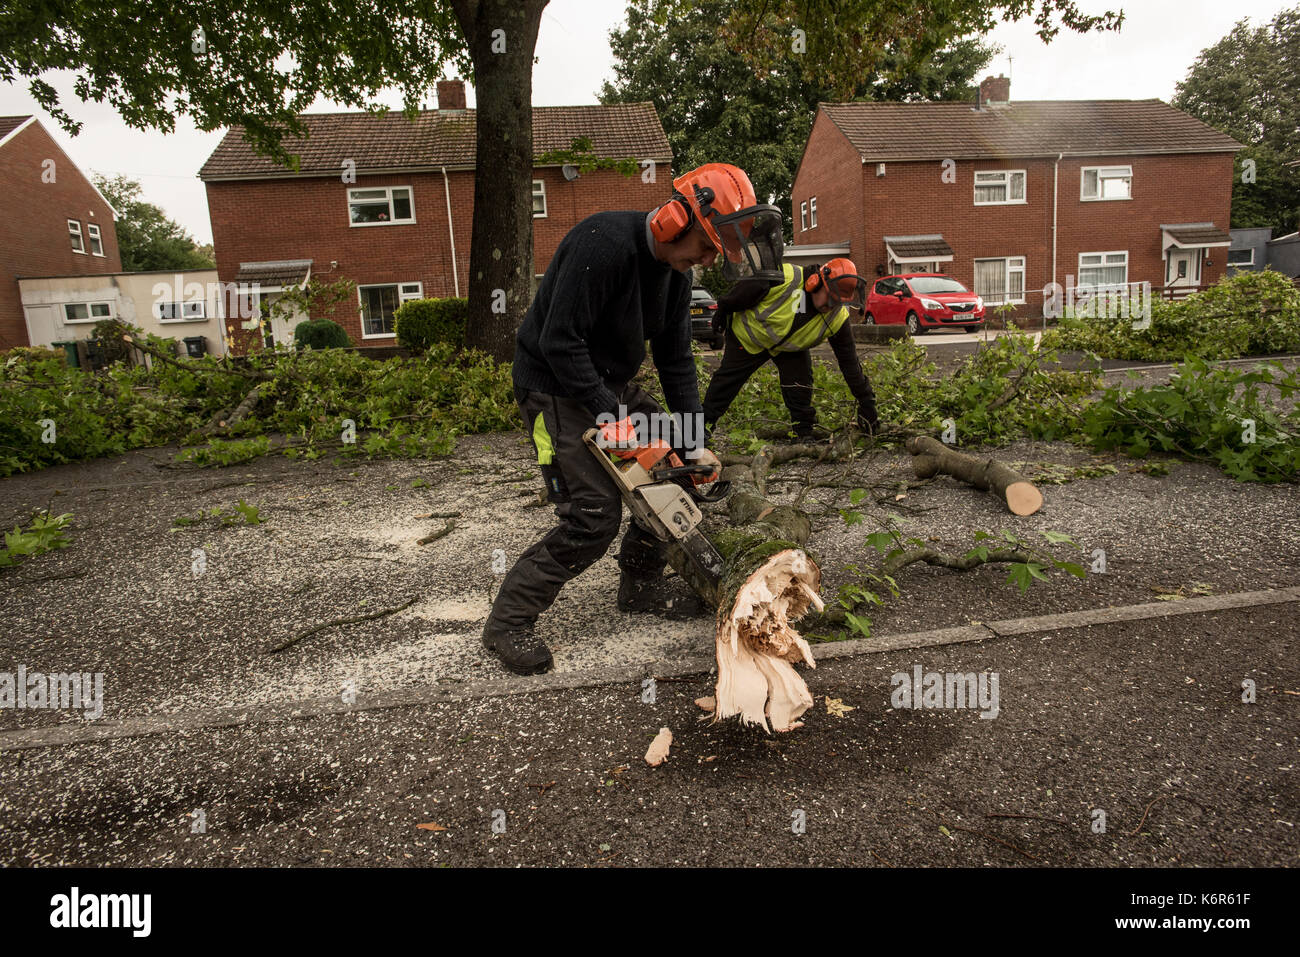 Cardiff, UK. 13th Sep, 2017. 17-09-13 . Cardiff, Wales, UK. Storm Aileen, the first named storm of the 2017-2018 season downs trees across the Welsh capital, Cardiff causing roads to close as in here in Aberporth Road, Mynachdy where a cutting and clear up crew is busy clearing. Picture Credit: IAN HOMER/Alamy Live News - Stock Image